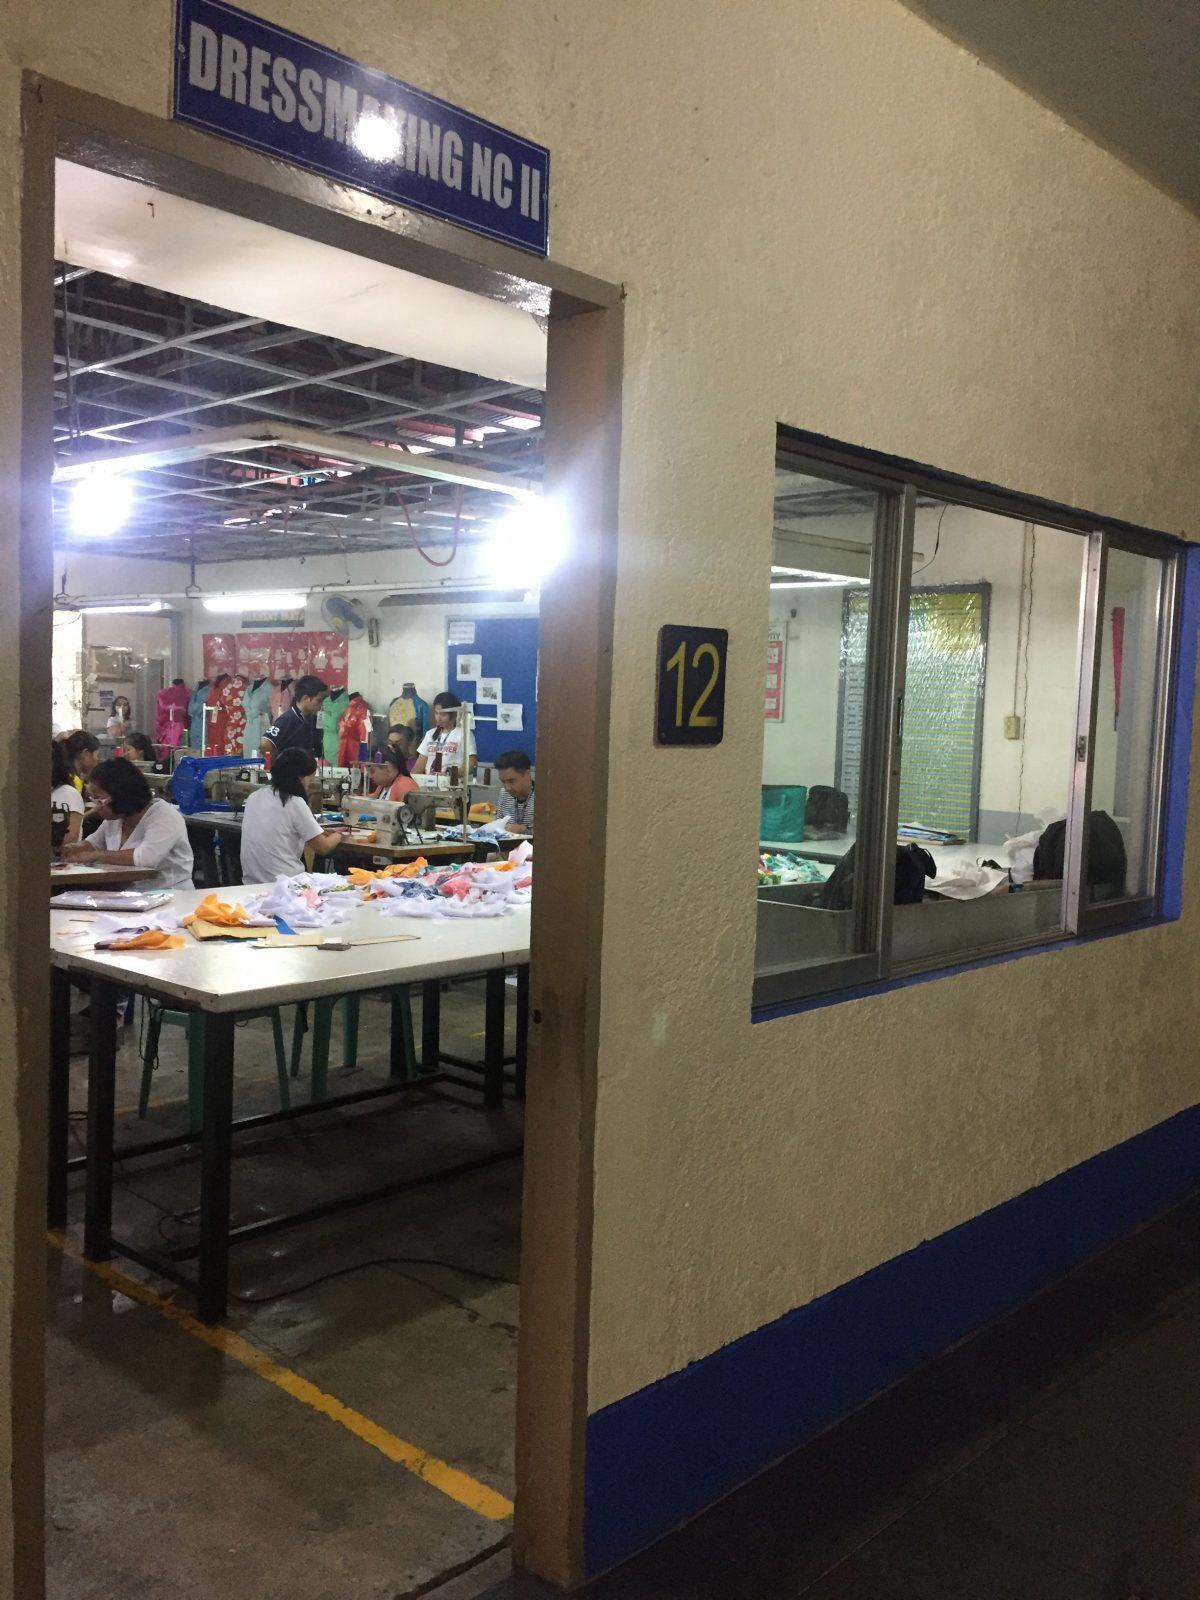 TESDA DRESSMAKING: Fashion Institute of Cebu